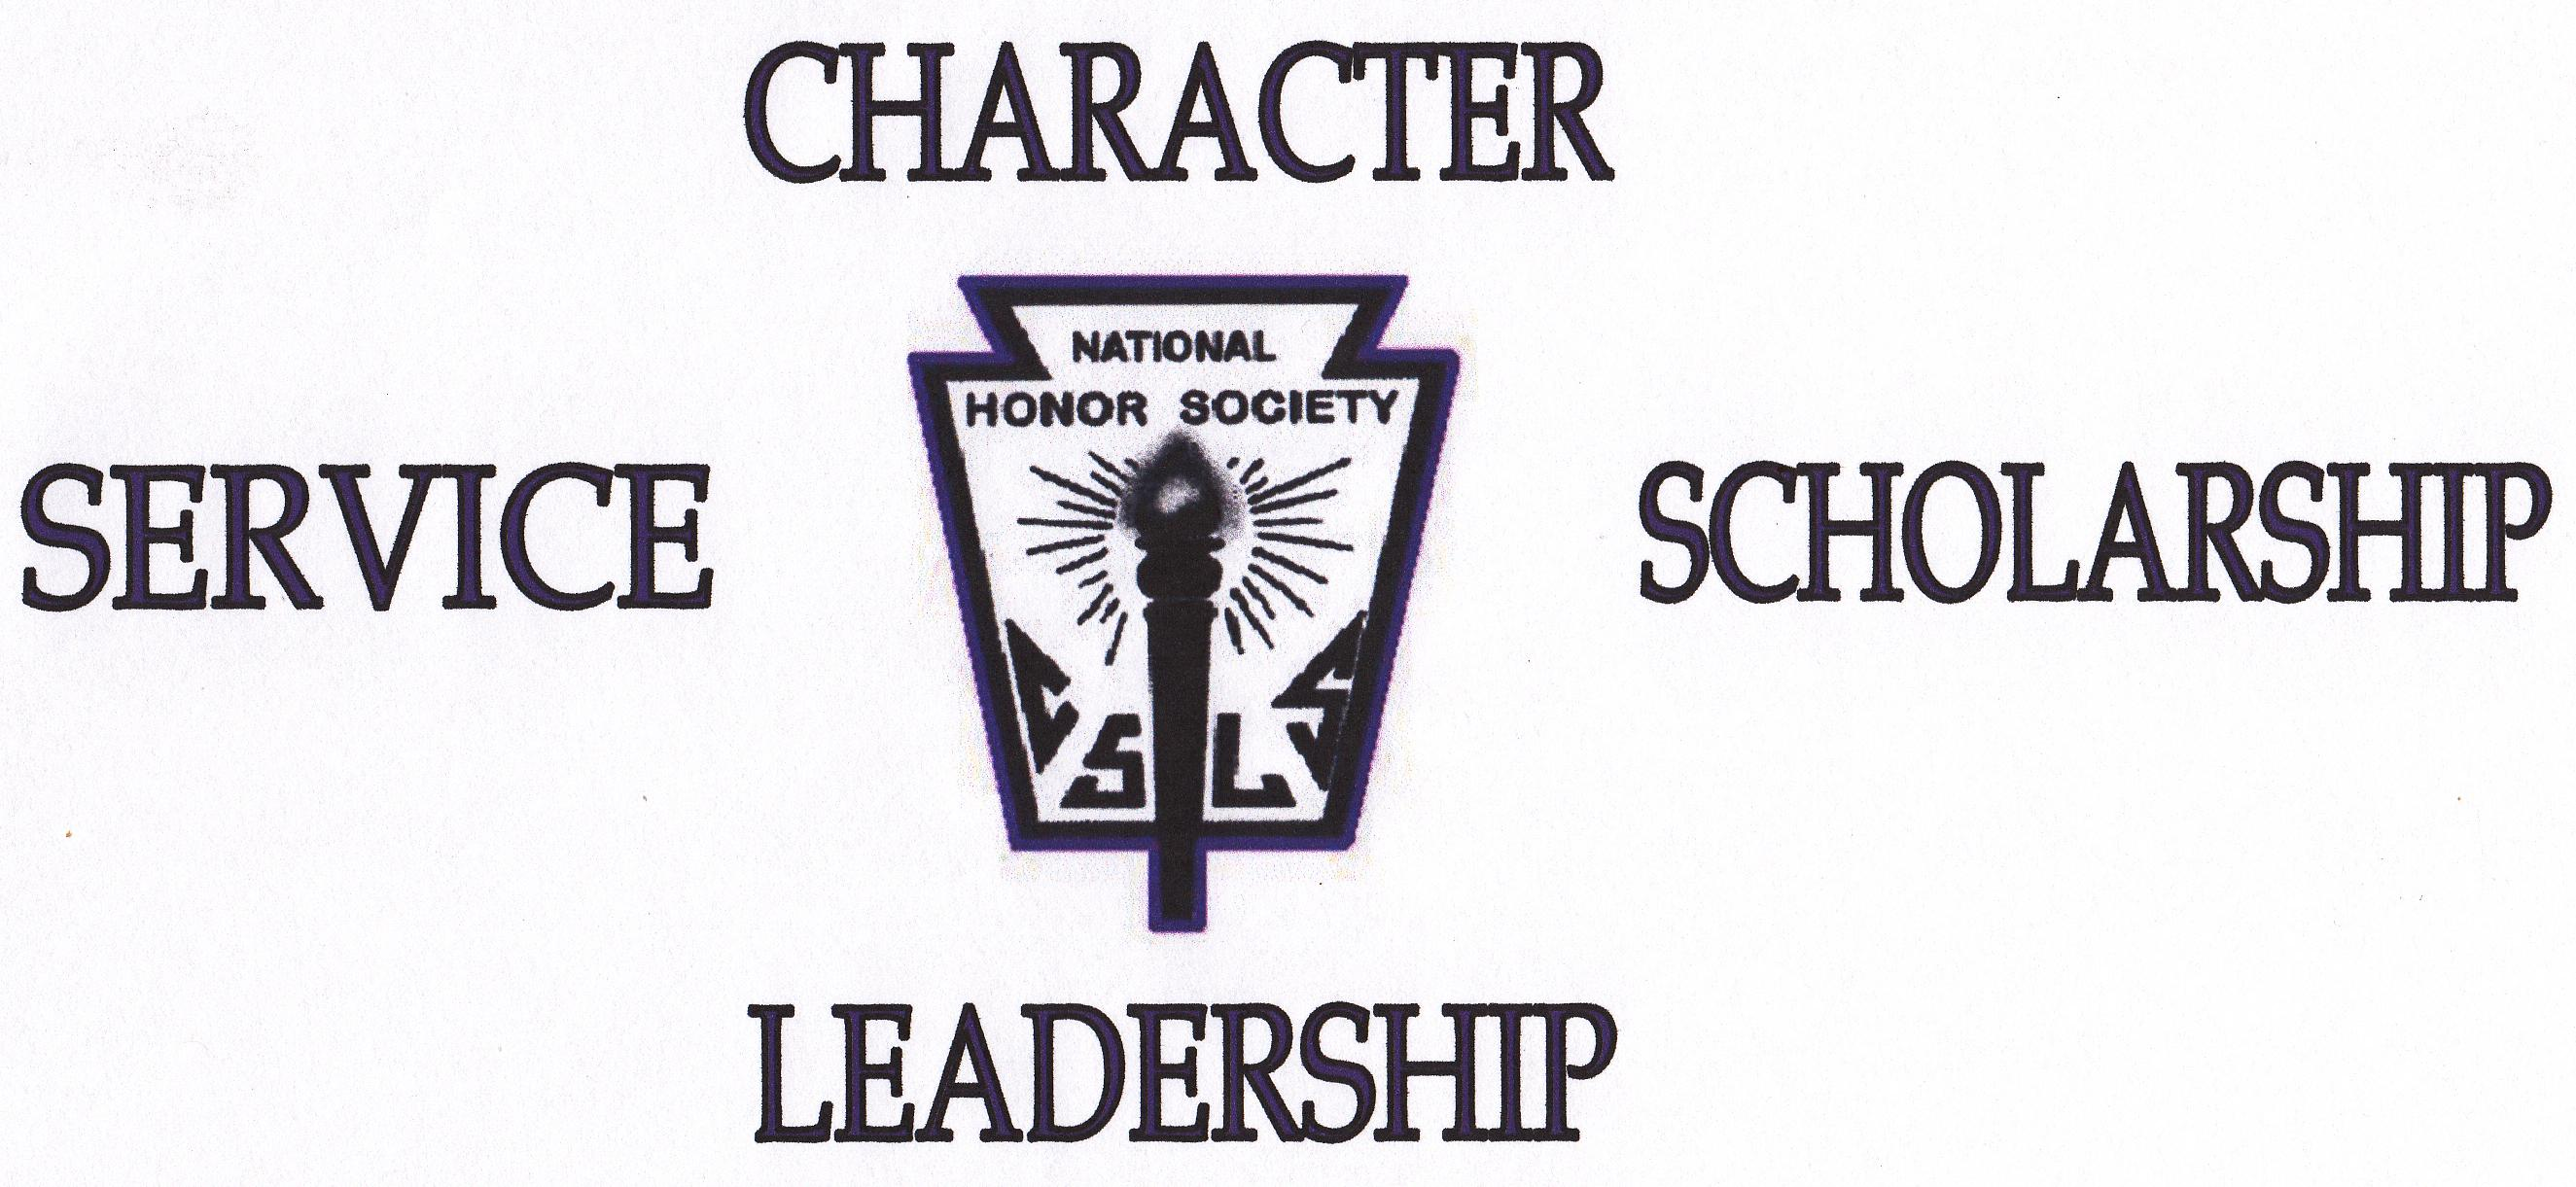 high school and national honor society The national honor society is a group of motivated students who are committed to providing community service nhs strives to create a passion for scholarship an eagerness to serve the community, to promote leadership, and develop an upstanding character in the students of concord high school.